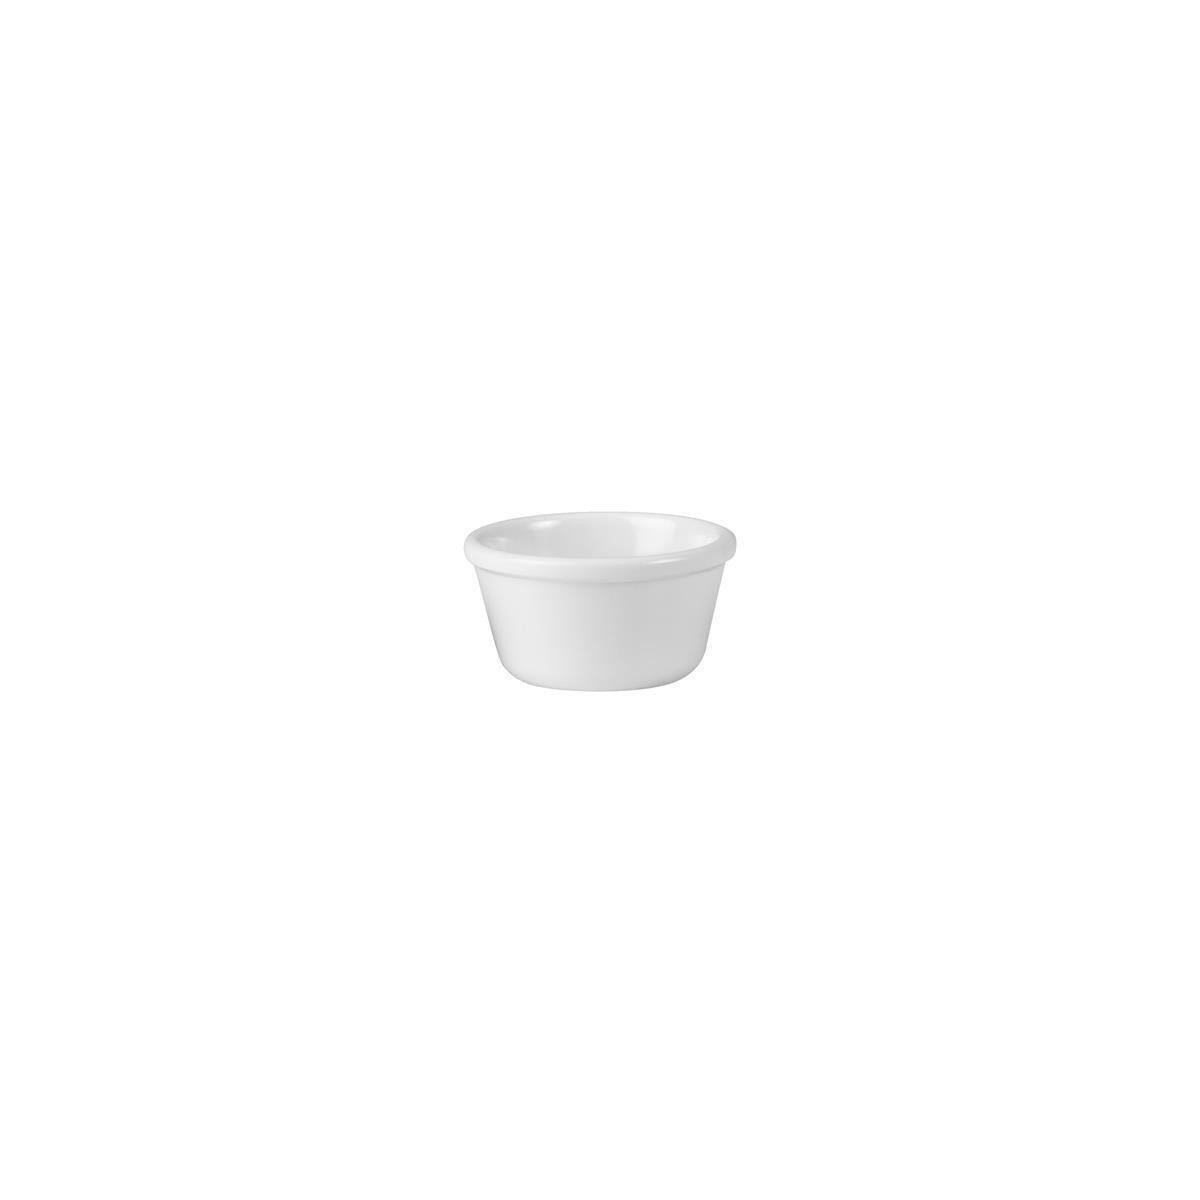 Ryner Melamine Rameken White 120ml - 85mm Dia. x 50mmH White